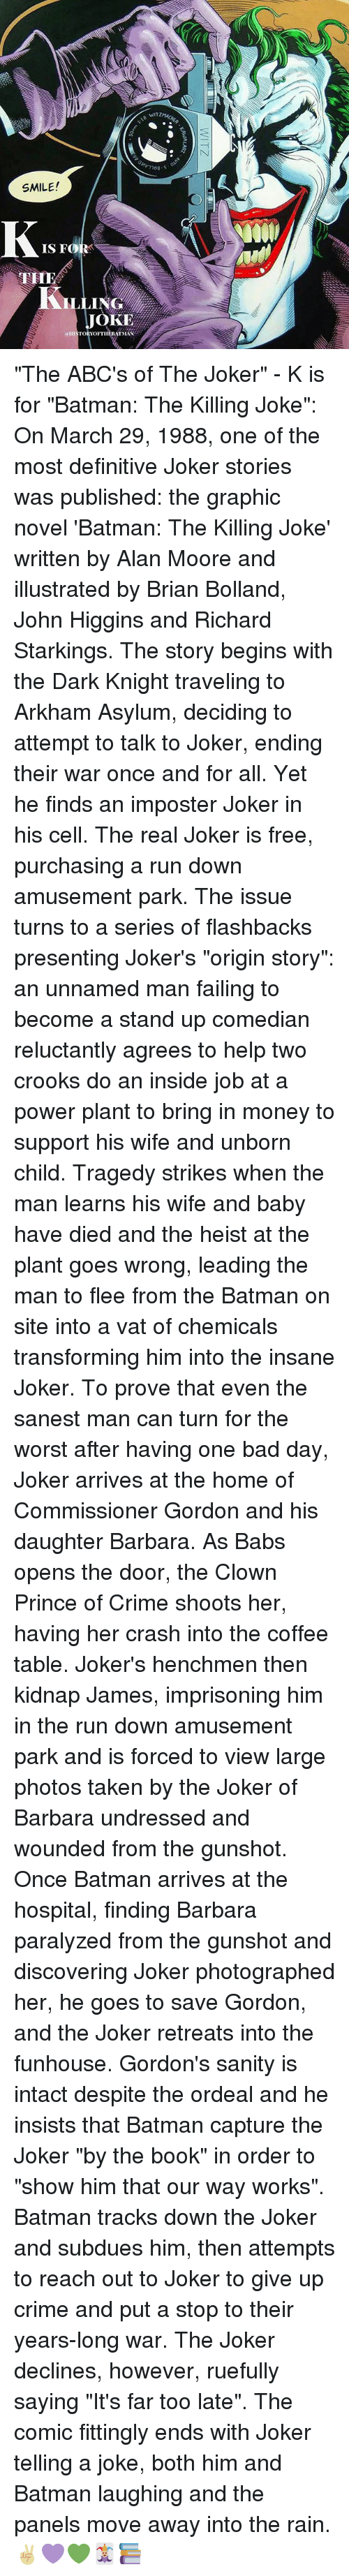 """Bad, Bad Day, and Batman: (TZMACHER  vlETZM4  Qhy7708  7708-S  SMILE!  IS FOR  .LING  JOKE  HISTORYOFI'llEBAT3Lse..  WITZ  KAWALAR2  K """"The ABC's of The Joker"""" - K is for """"Batman: The Killing Joke"""": On March 29, 1988, one of the most definitive Joker stories was published: the graphic novel 'Batman: The Killing Joke' written by Alan Moore and illustrated by Brian Bolland, John Higgins and Richard Starkings. The story begins with the Dark Knight traveling to Arkham Asylum, deciding to attempt to talk to Joker, ending their war once and for all. Yet he finds an imposter Joker in his cell. The real Joker is free, purchasing a run down amusement park. The issue turns to a series of flashbacks presenting Joker's """"origin story"""": an unnamed man failing to become a stand up comedian reluctantly agrees to help two crooks do an inside job at a power plant to bring in money to support his wife and unborn child. Tragedy strikes when the man learns his wife and baby have died and the heist at the plant goes wrong, leading the man to flee from the Batman on site into a vat of chemicals transforming him into the insane Joker. To prove that even the sanest man can turn for the worst after having one bad day, Joker arrives at the home of Commissioner Gordon and his daughter Barbara. As Babs opens the door, the Clown Prince of Crime shoots her, having her crash into the coffee table. Joker's henchmen then kidnap James, imprisoning him in the run down amusement park and is forced to view large photos taken by the Joker of Barbara undressed and wounded from the gunshot. Once Batman arrives at the hospital, finding Barbara paralyzed from the gunshot and discovering Joker photographed her, he goes to save Gordon, and the Joker retreats into the funhouse. Gordon's sanity is intact despite the ordeal and he insists that Batman capture the Joker """"by the book"""" in order to """"show him that our way works"""". Batman tracks down the Joker and subdues him, then attempts to reach out to Joker to give """